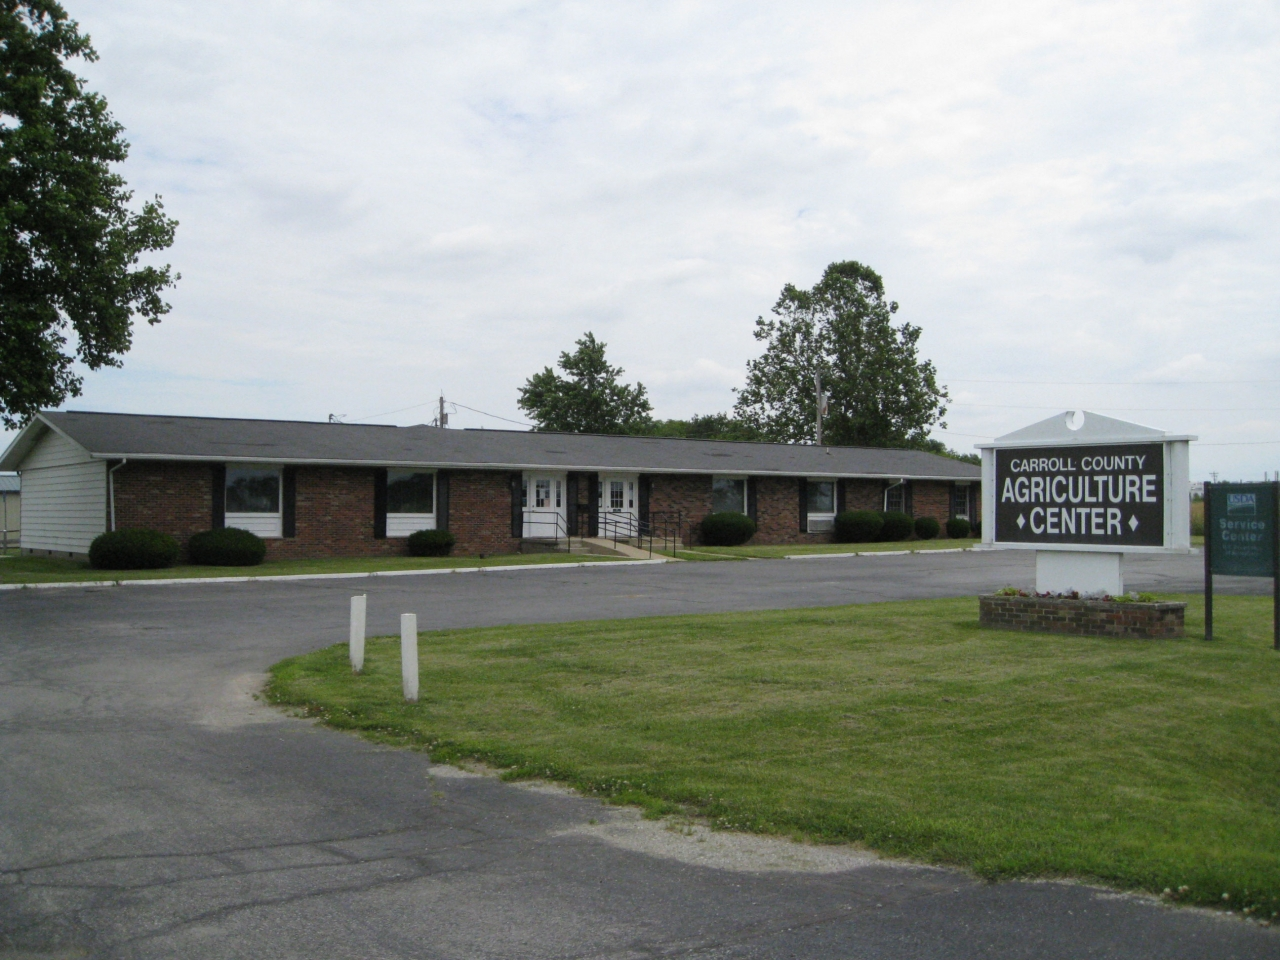 Agricultural Center in Carroll County Indiana